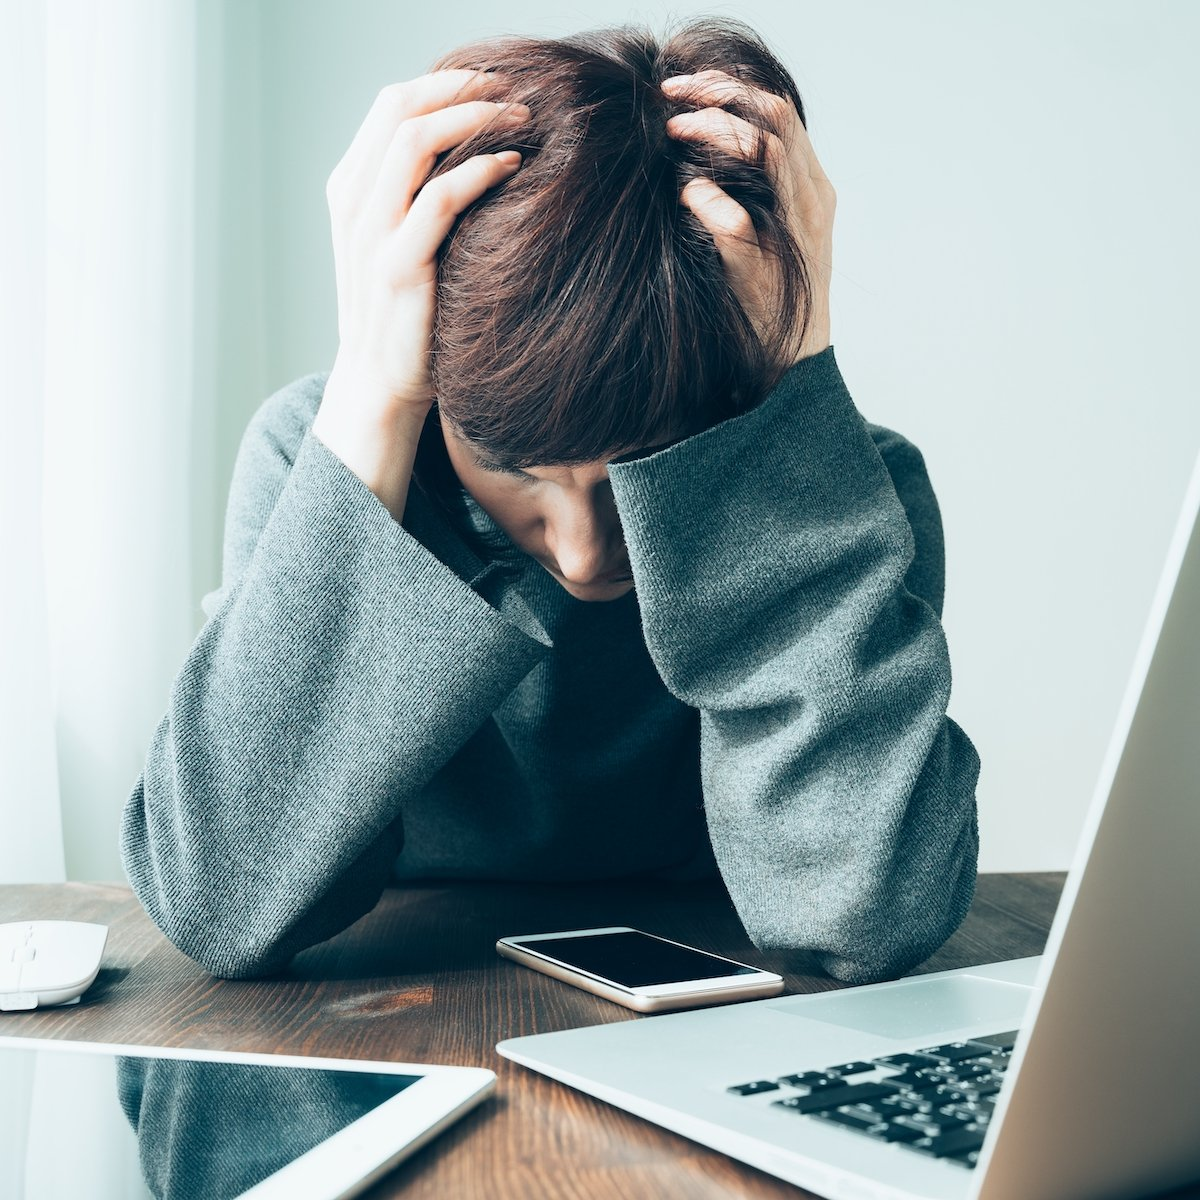 Teen in therapy for anxiety.